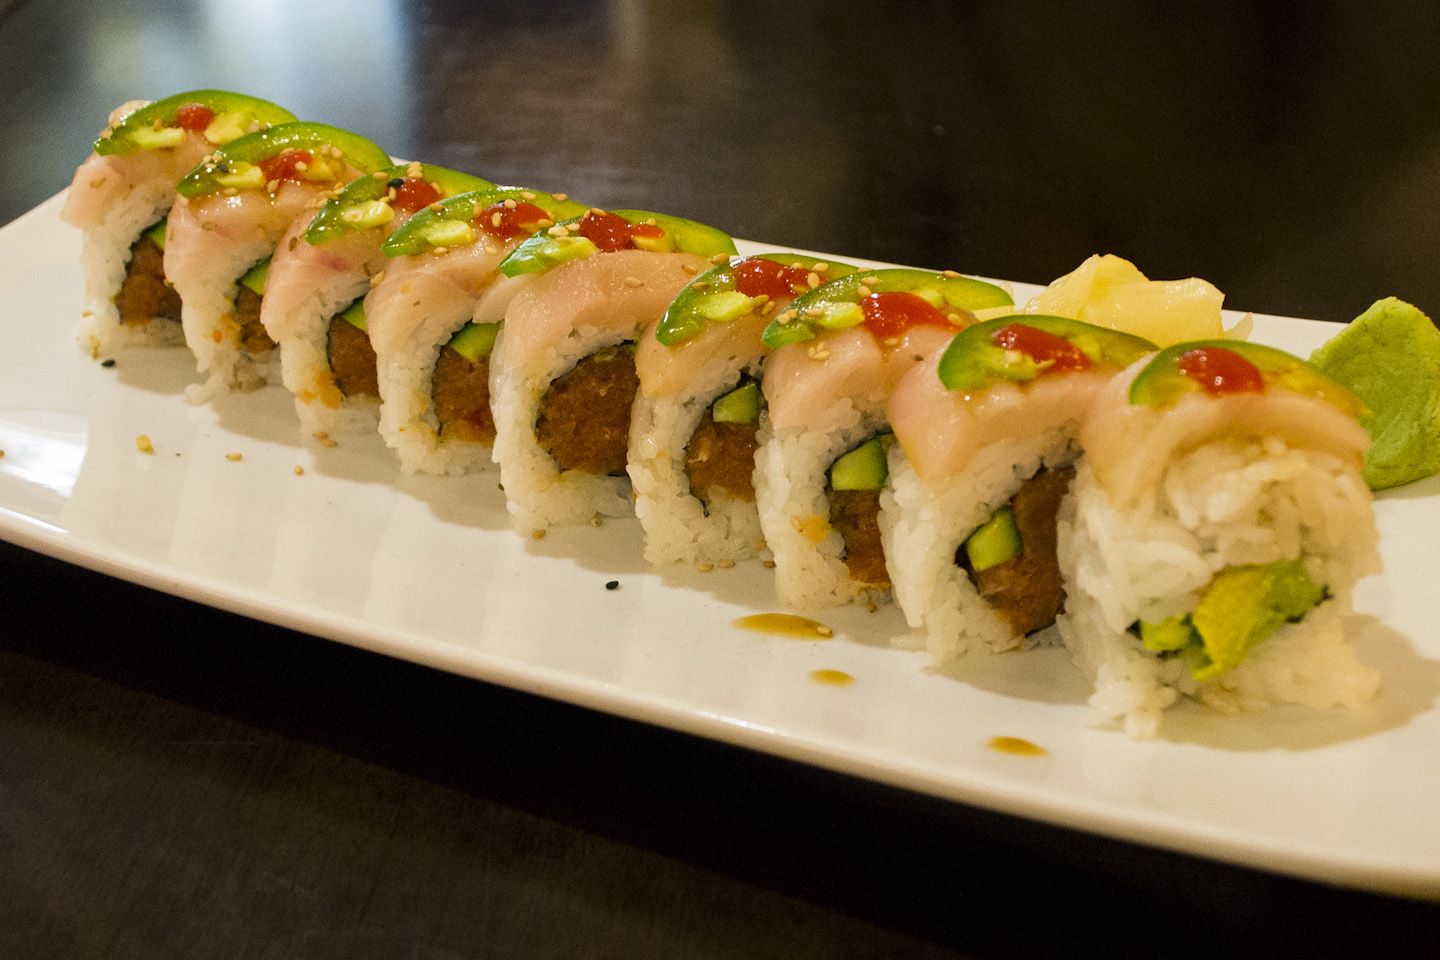 Orange Roll sushi pleases taste buds and wallet